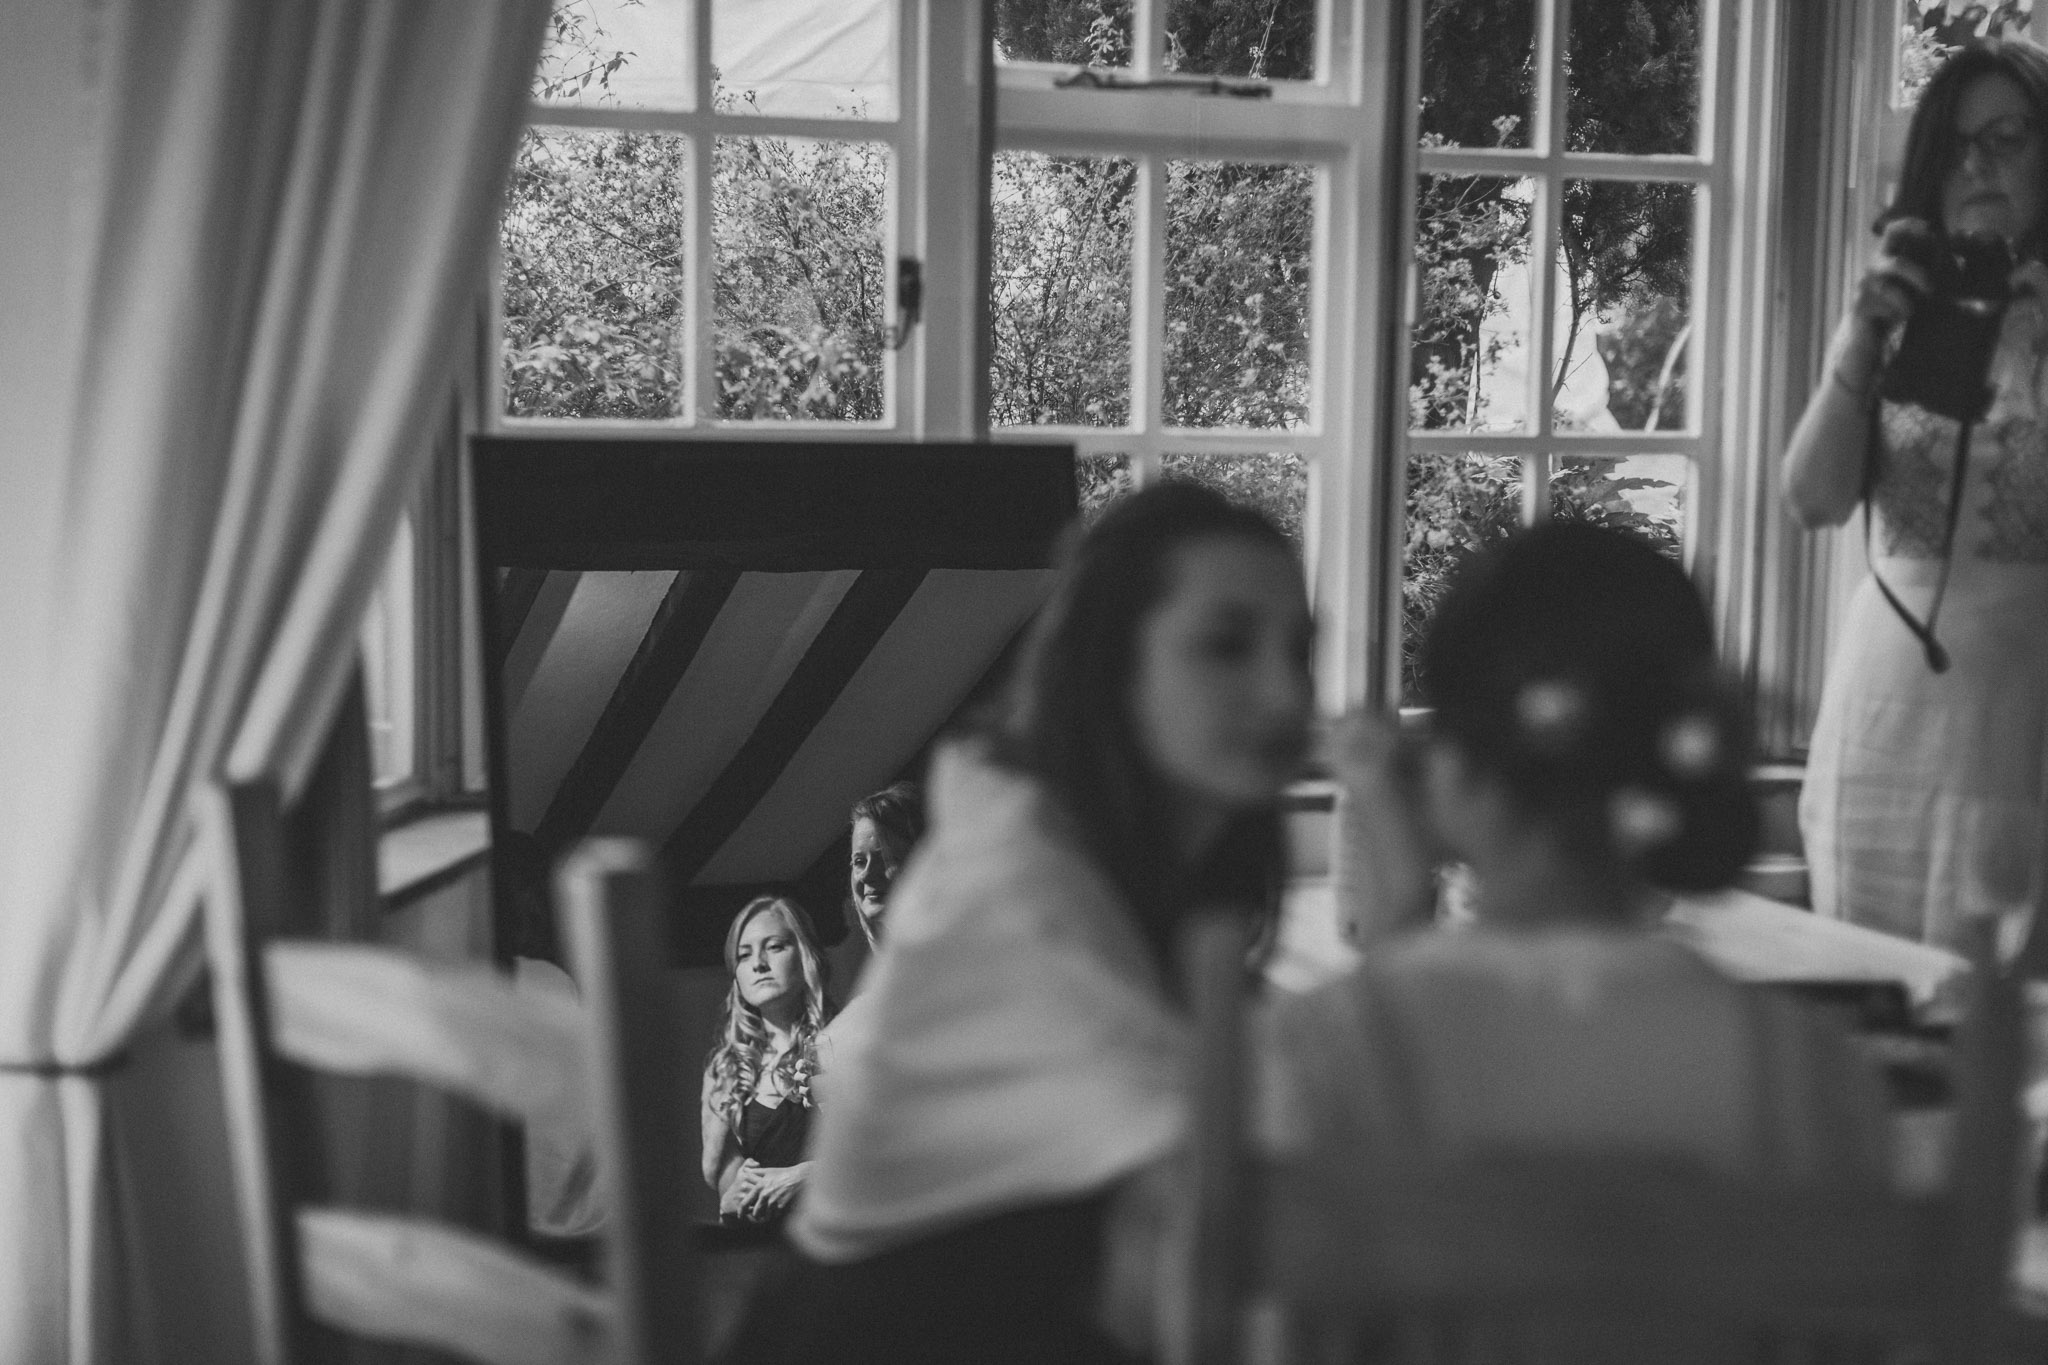 hambleden_henley_on_thames_wedding_014.jpg